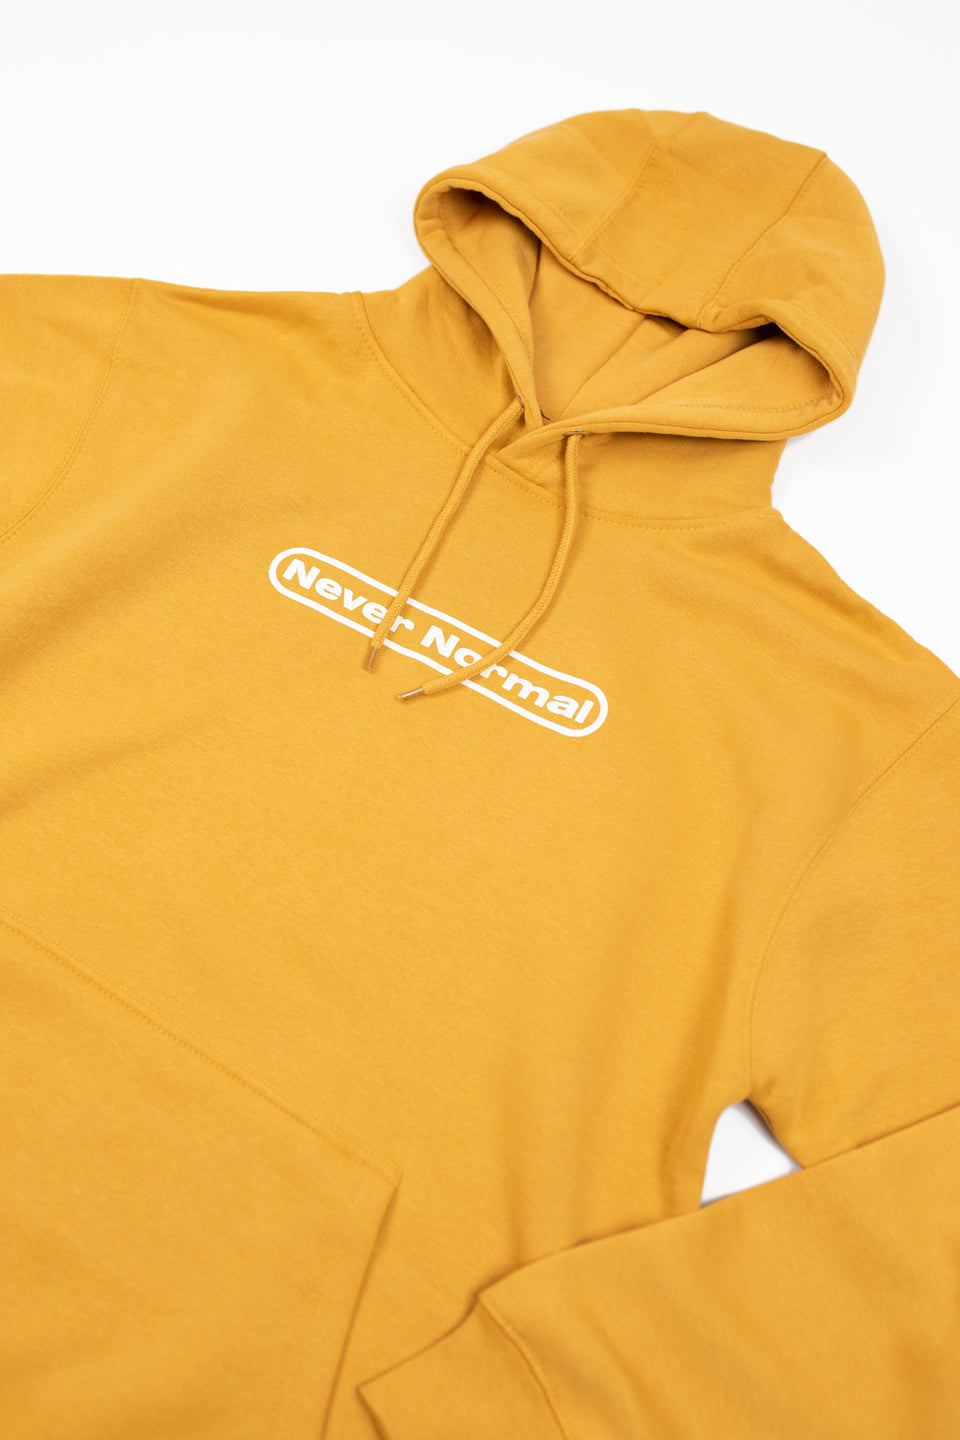 Sam Golbach: Never Normal Signature Mustard Hoodie